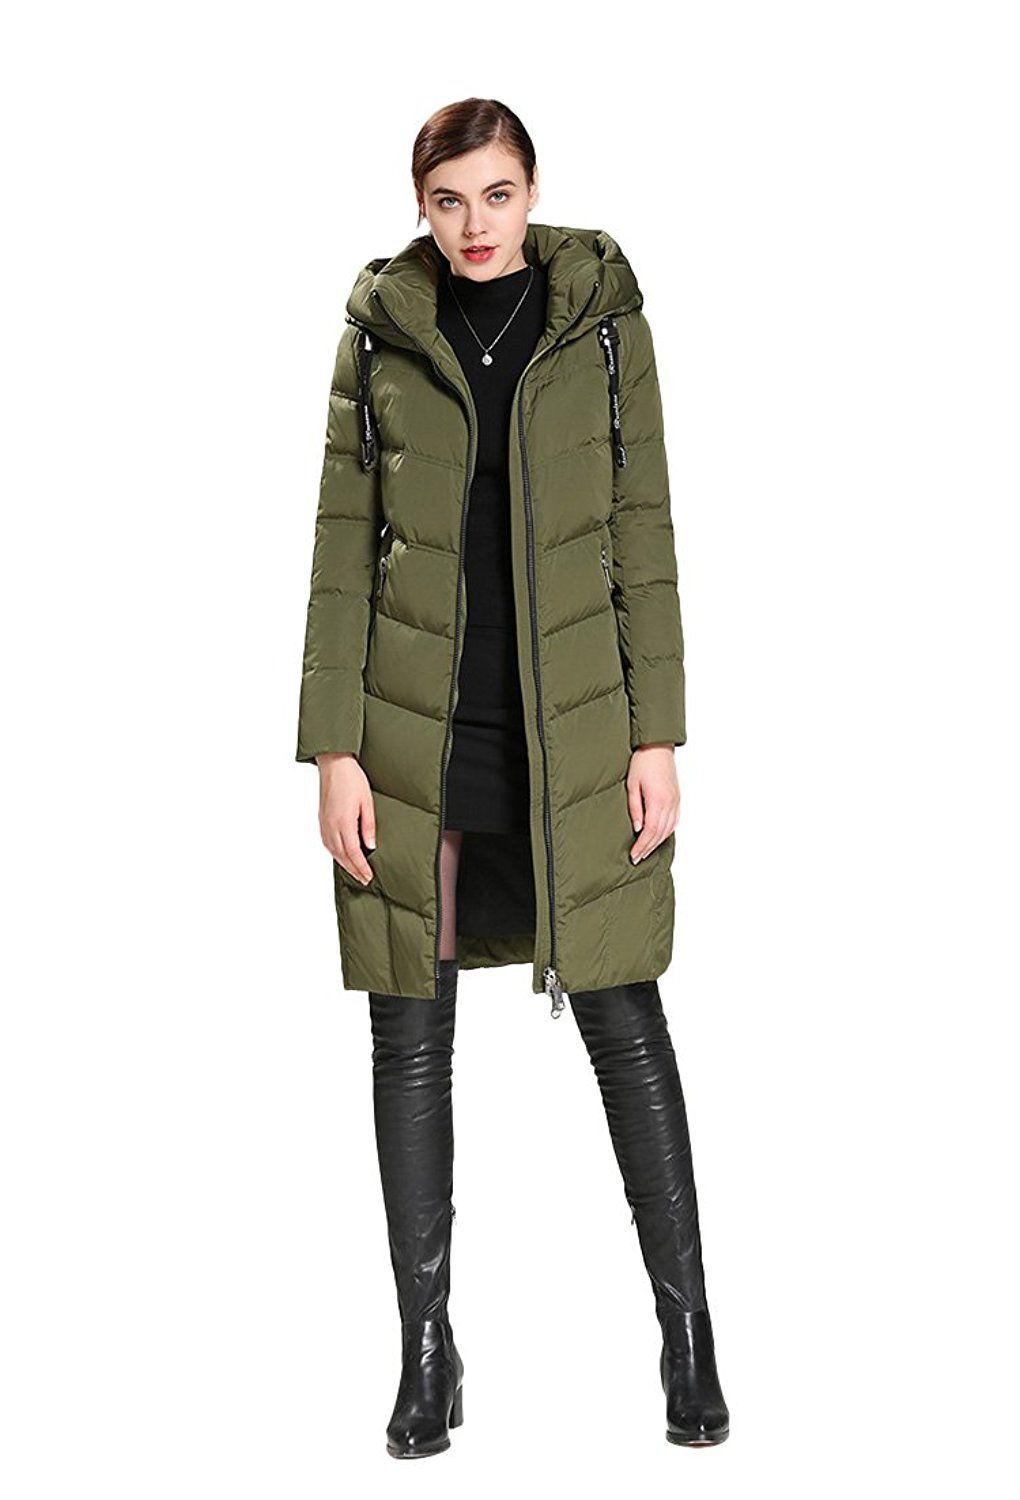 Down Jacket For Women Thickening Fashion Down Coat S Army Green At Amazon Women 39 S Coats Shop Jackets For Women Coat Shop Coats For Women [ 1500 x 1020 Pixel ]